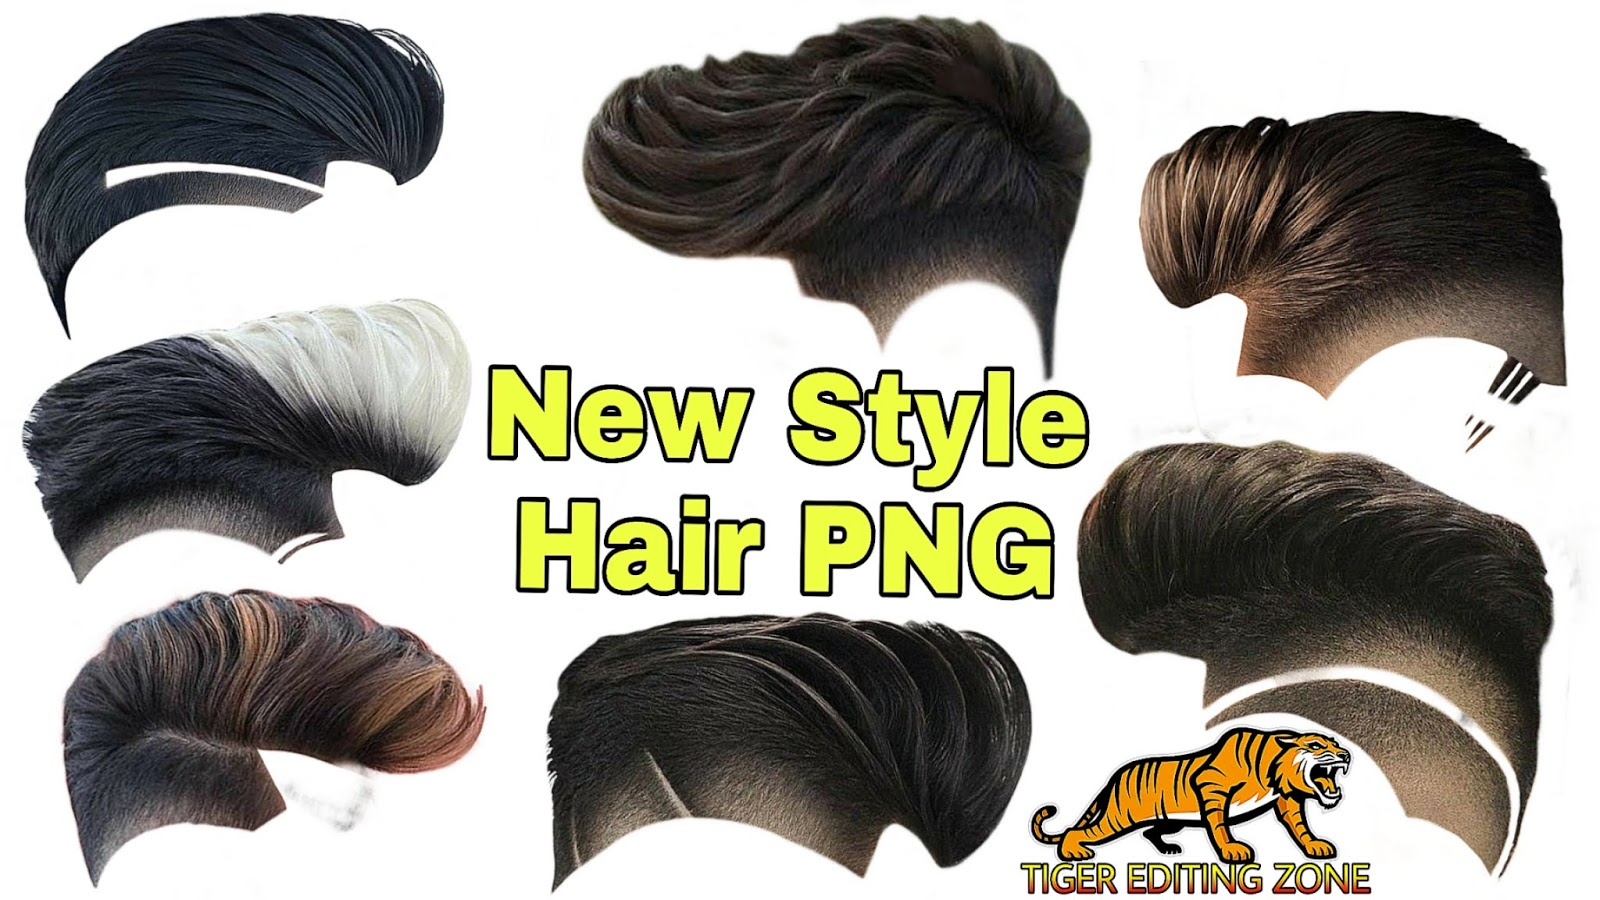 New Hair Style PNG HD | Hair PNG, Hair Png Download, Latest Hair Png 2020